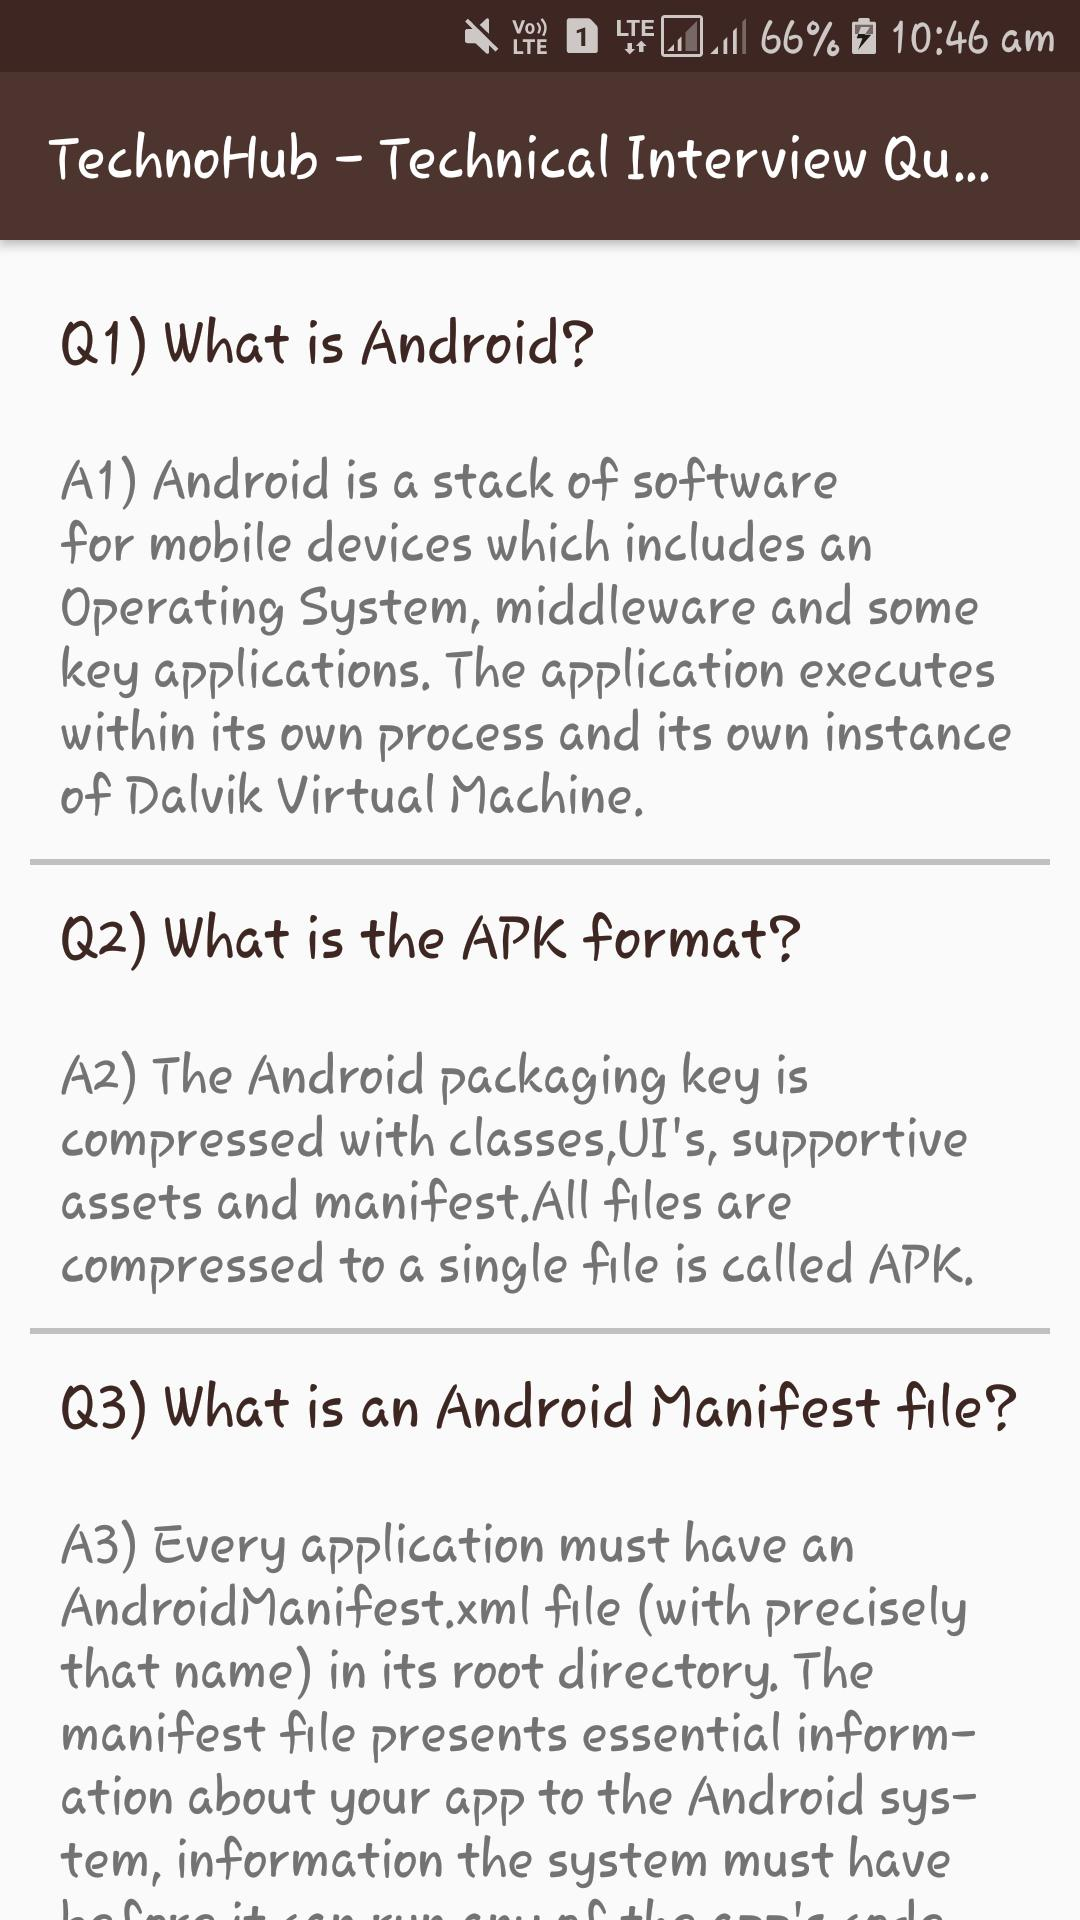 TechnoHub - Technical Interview Questions for Android - APK